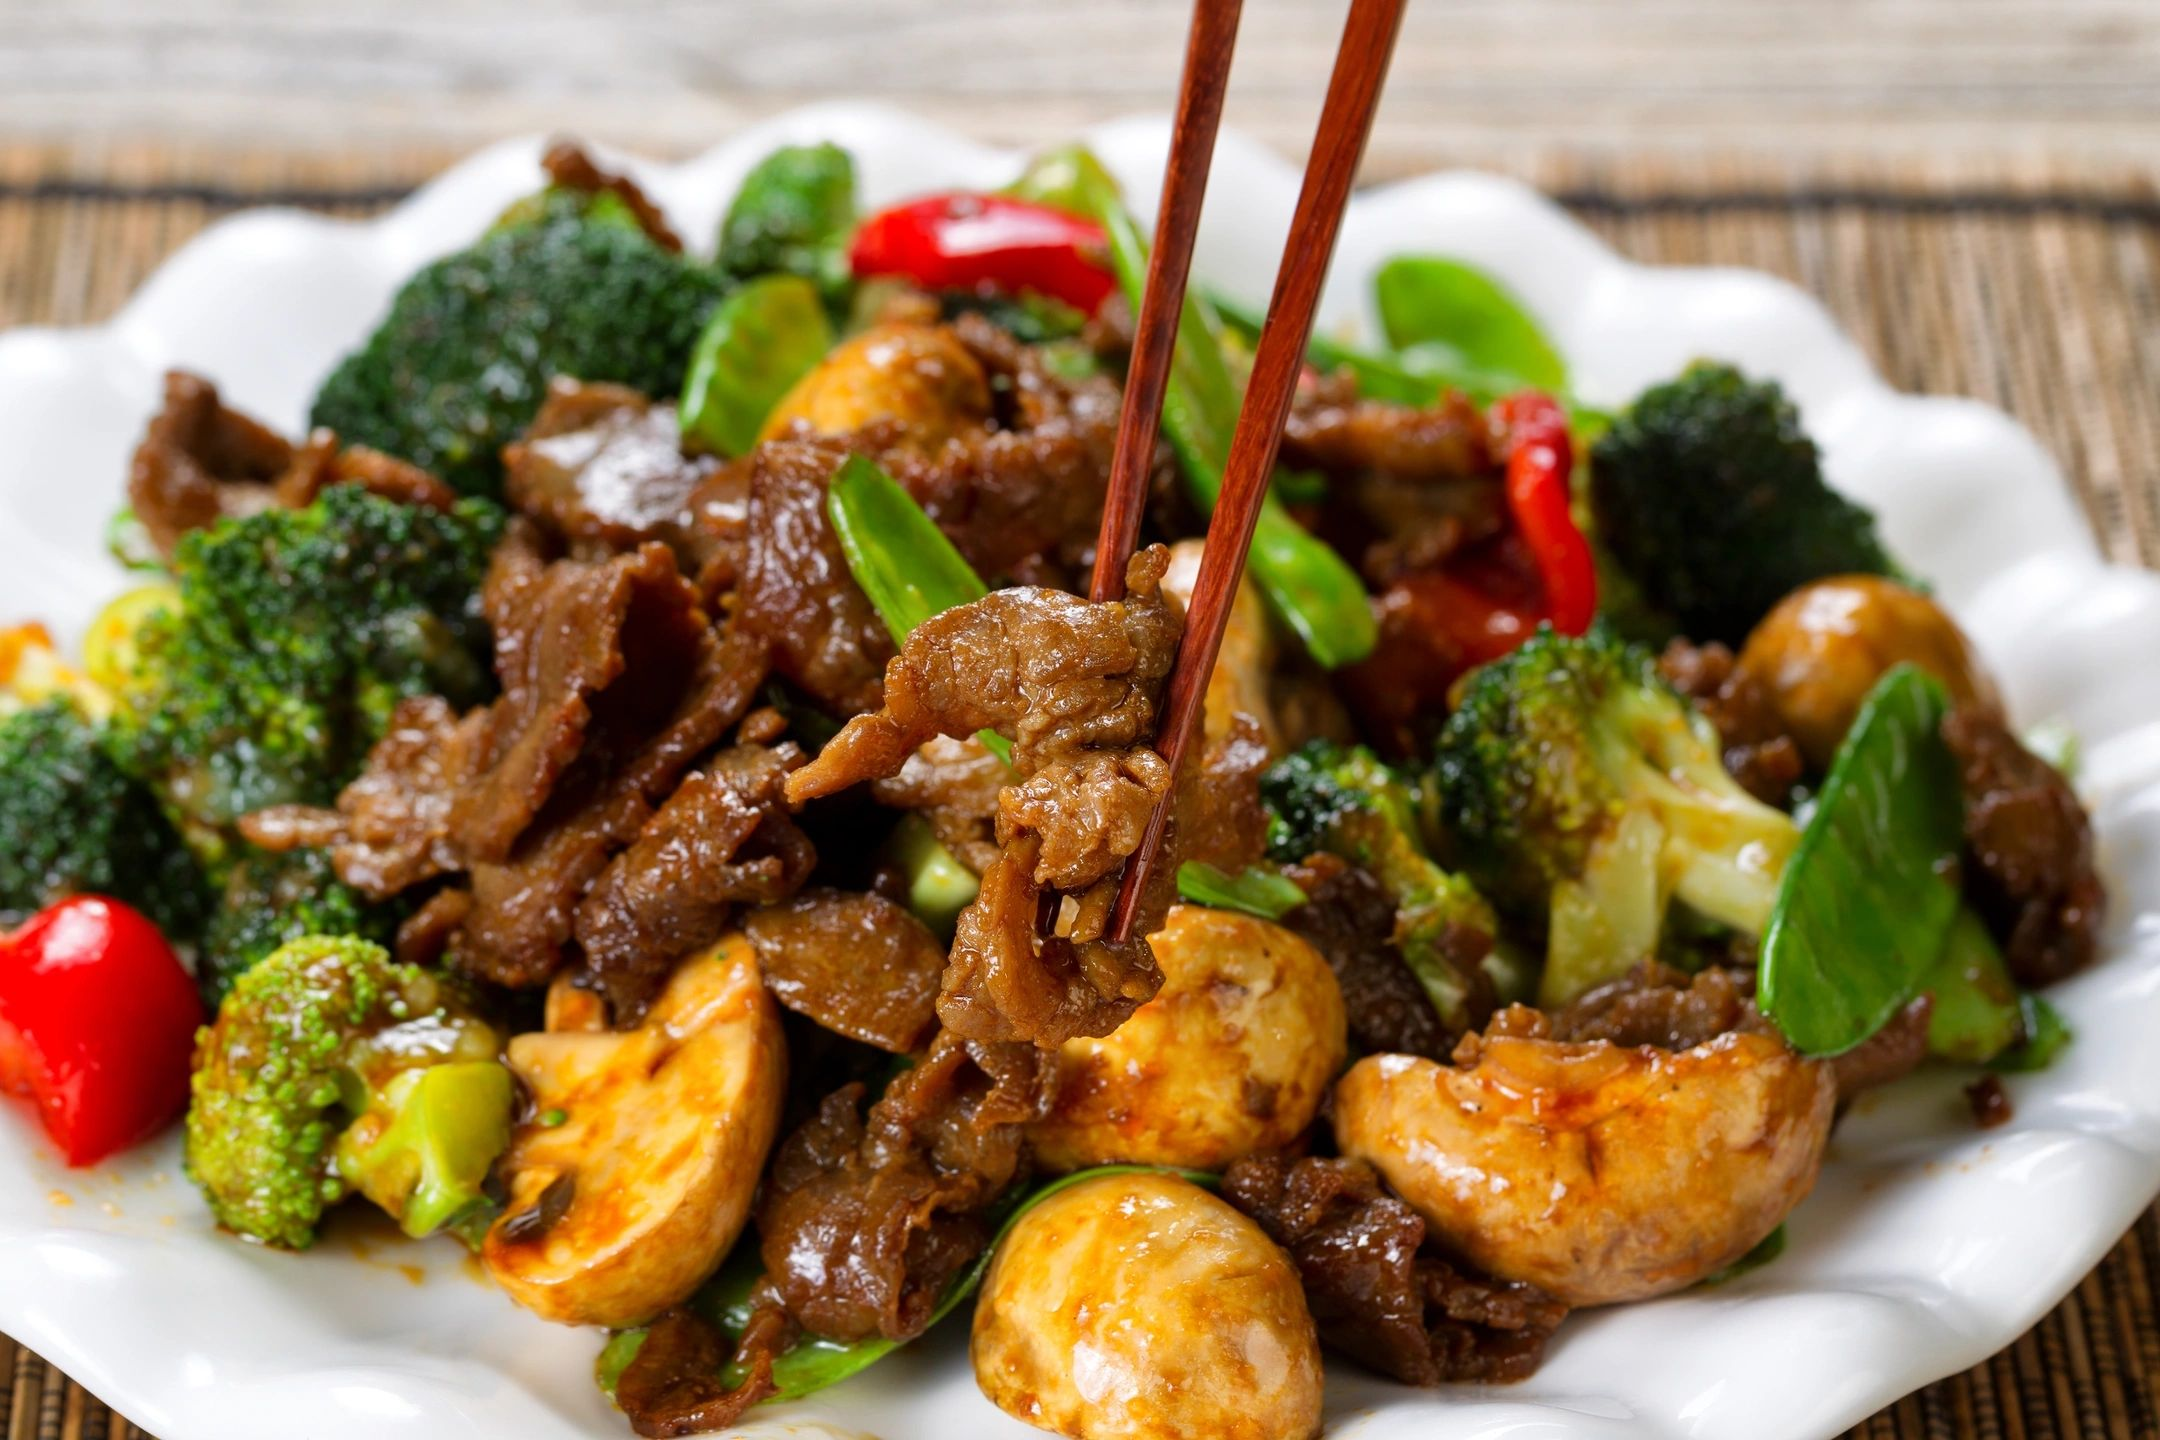 Plate of Beef with Broccoli and chop sticks